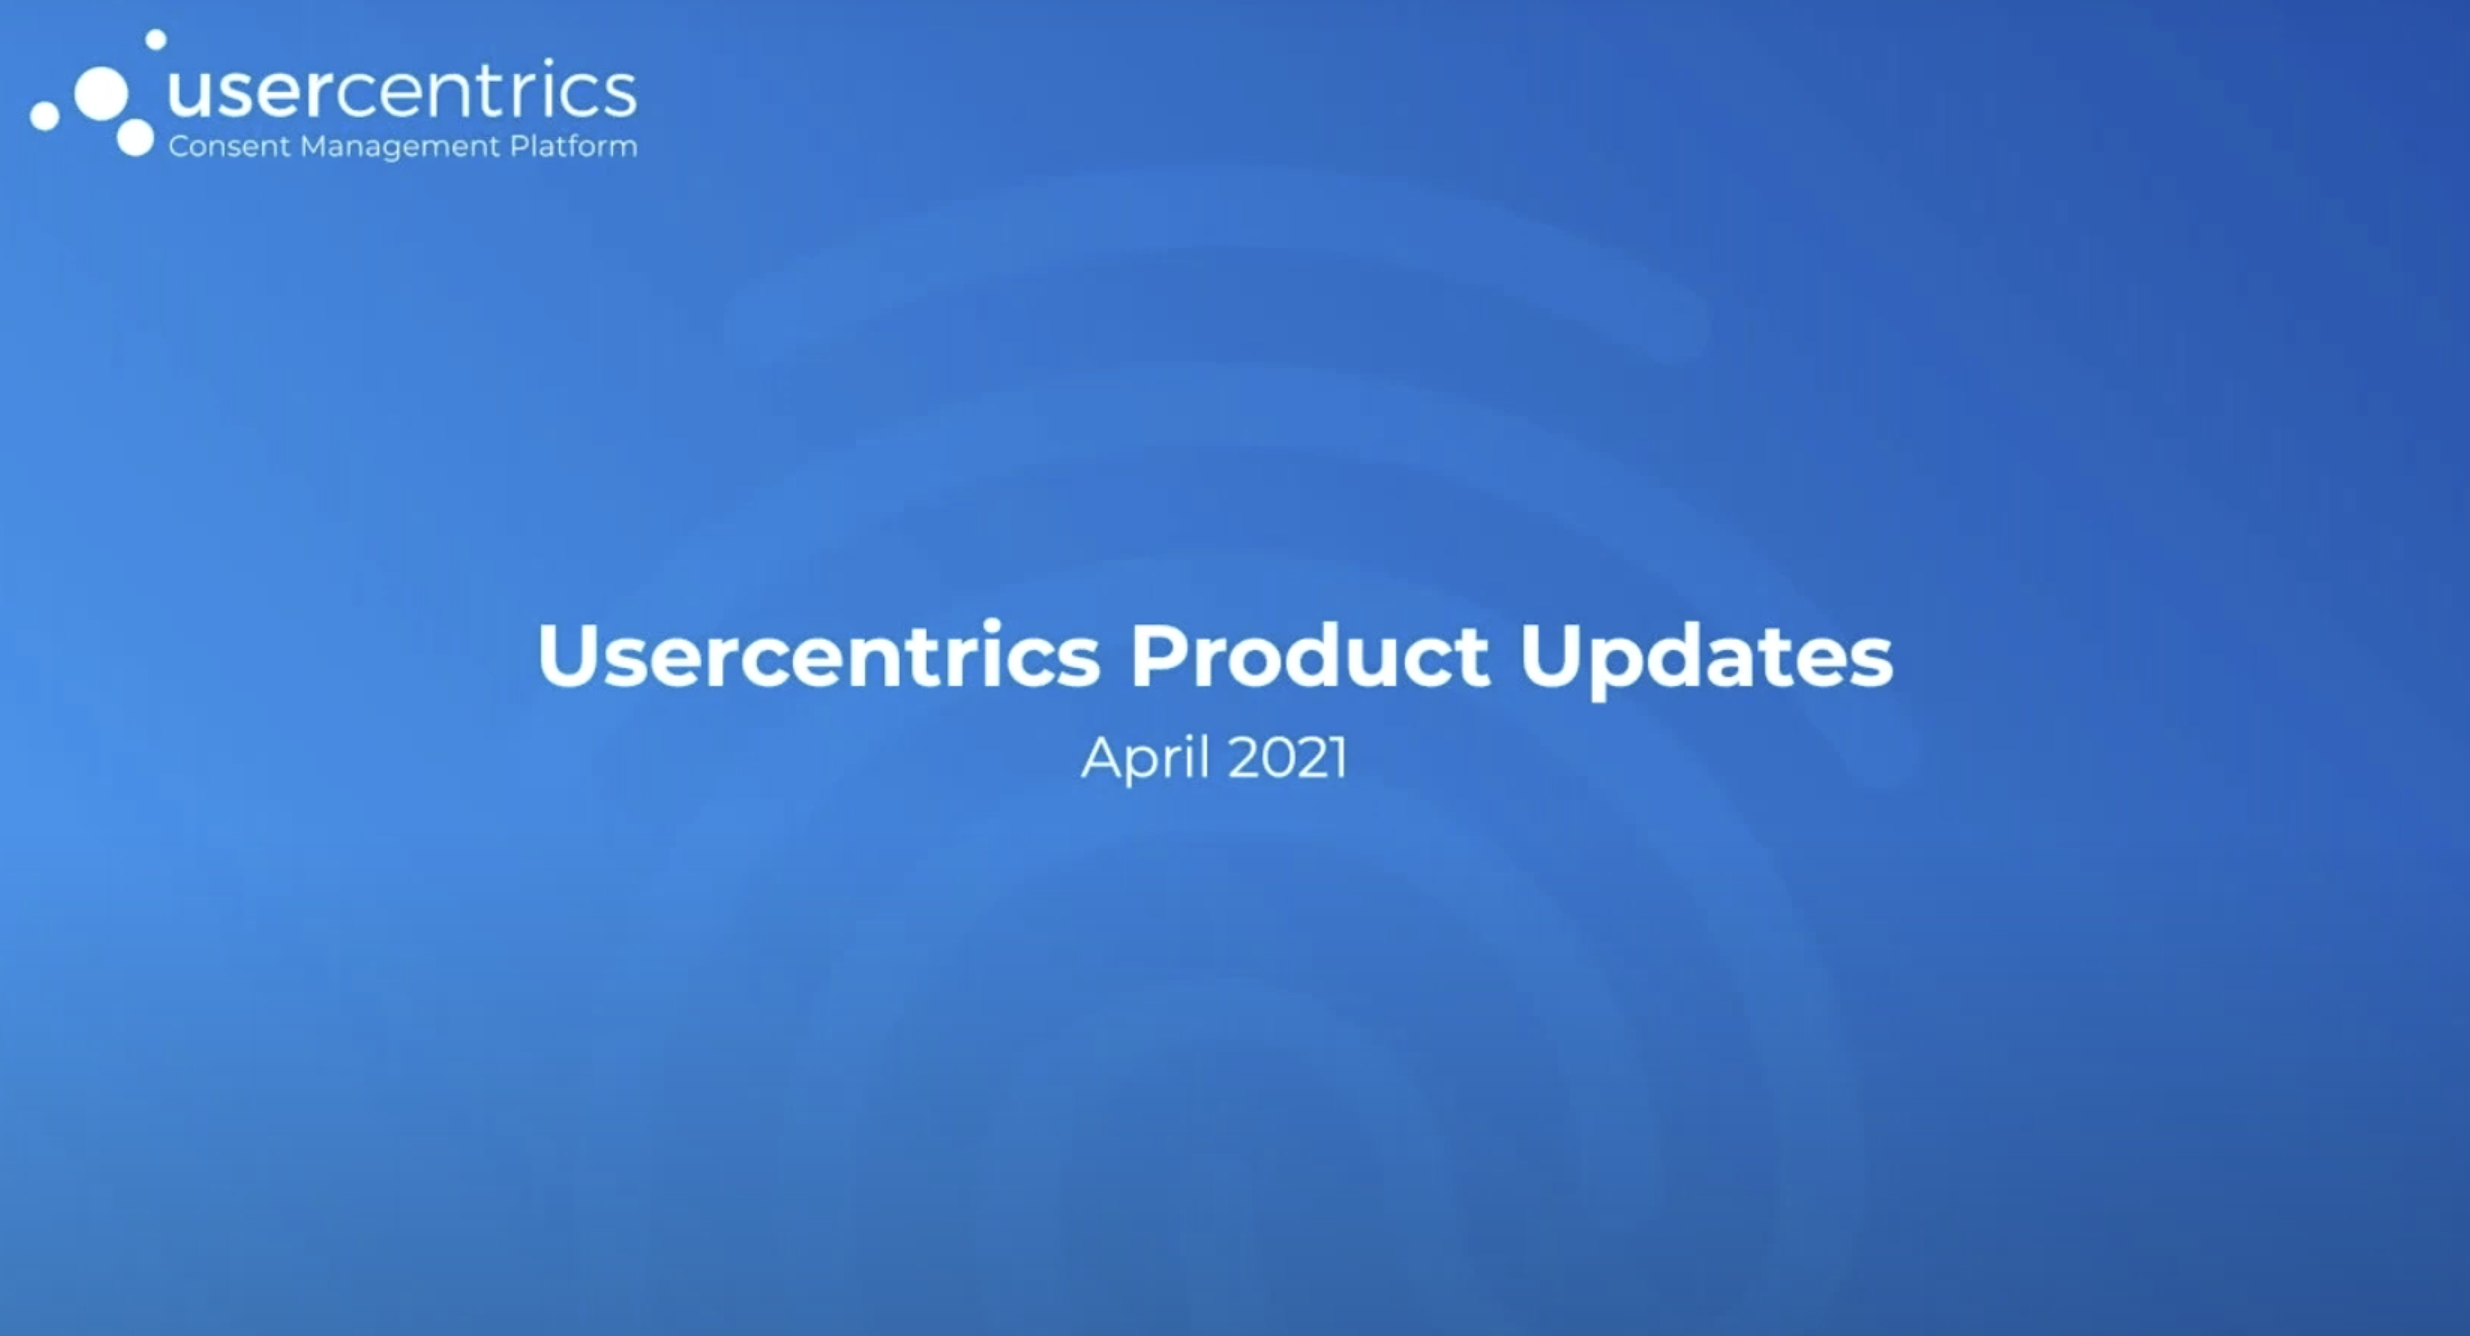 April 2021 Monthly Product Updates